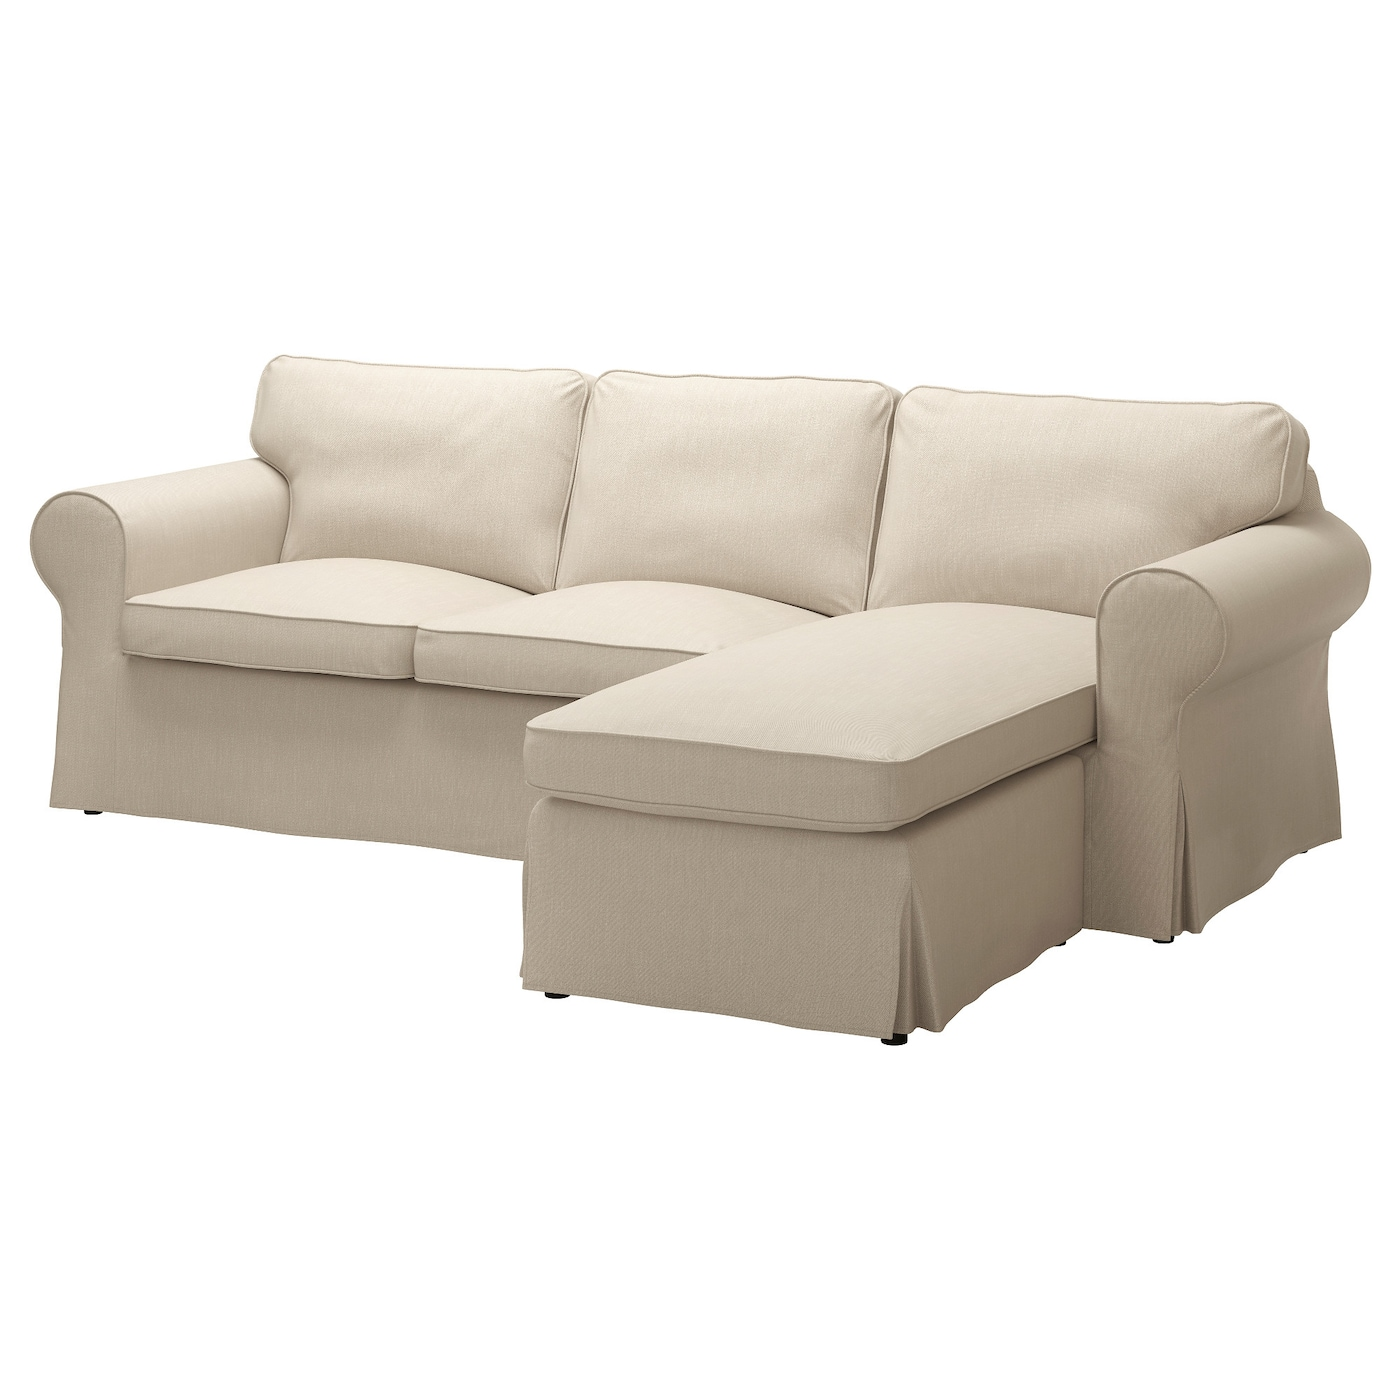 Ektorp 3 seat sofa with chaise longue nordvalla dark beige for Buy chaise longue